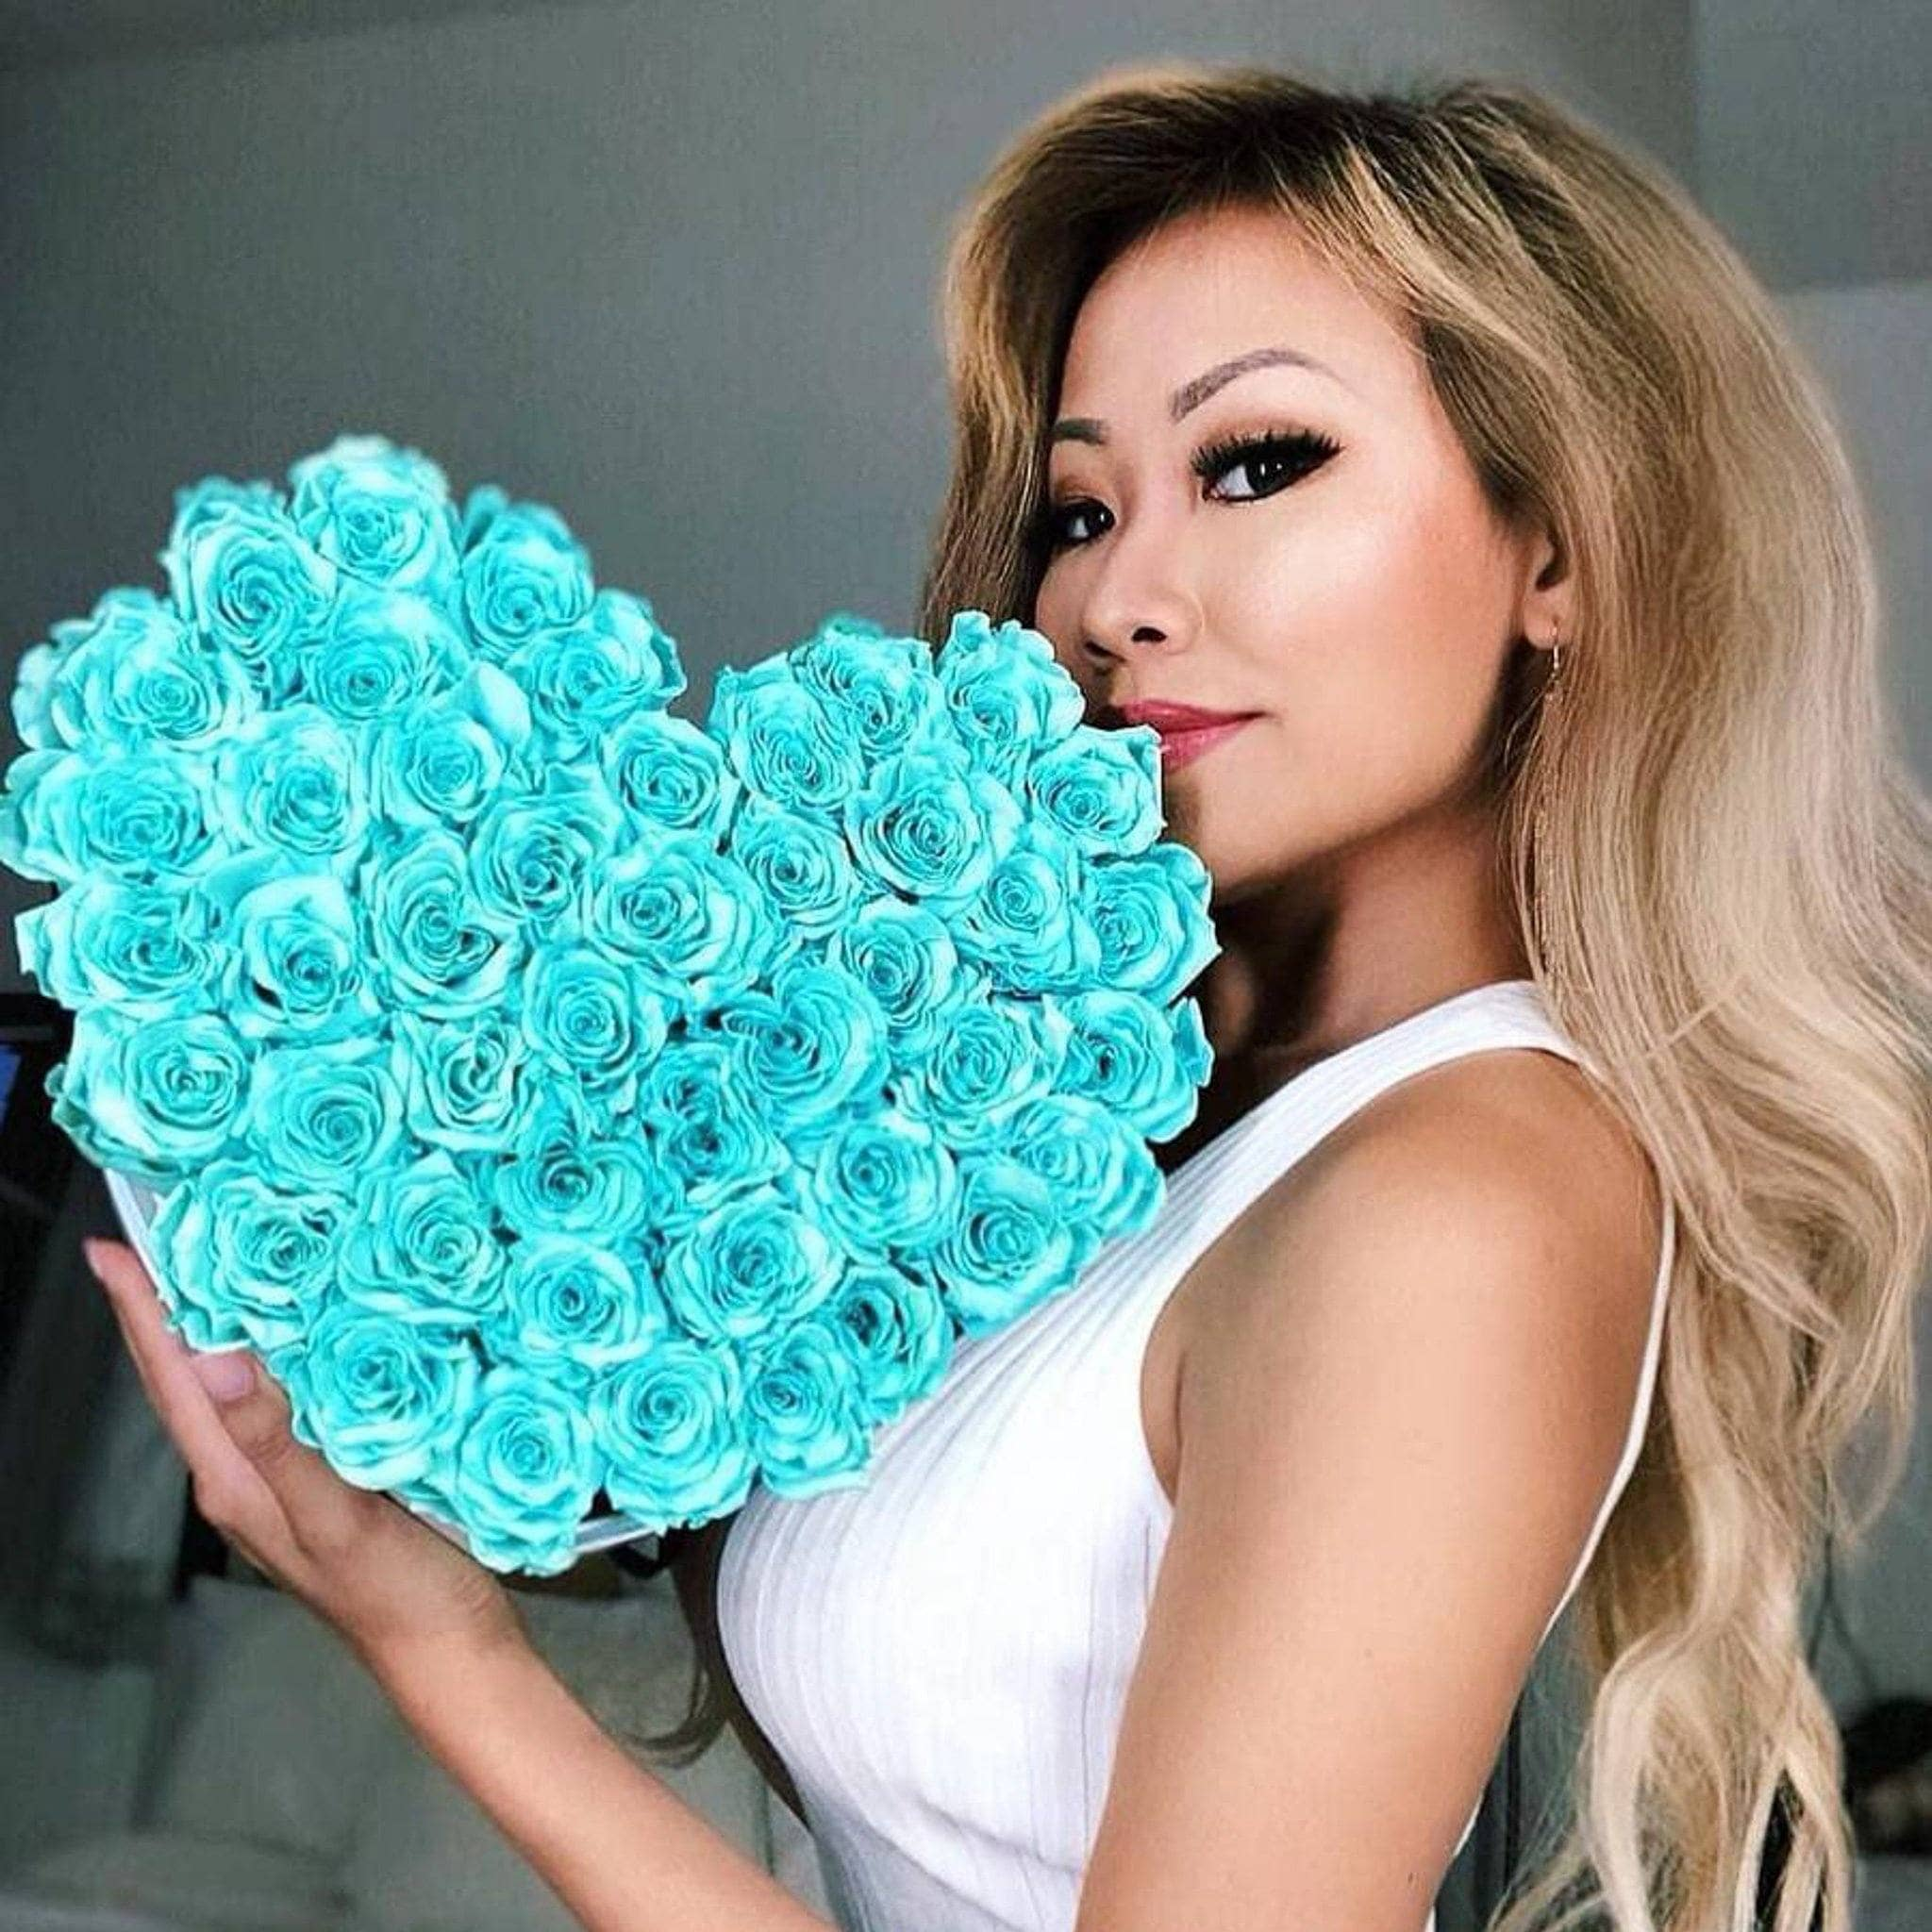 Tiffany Blue Roses That Last A Year - Love Heart Box - Palatial Petals